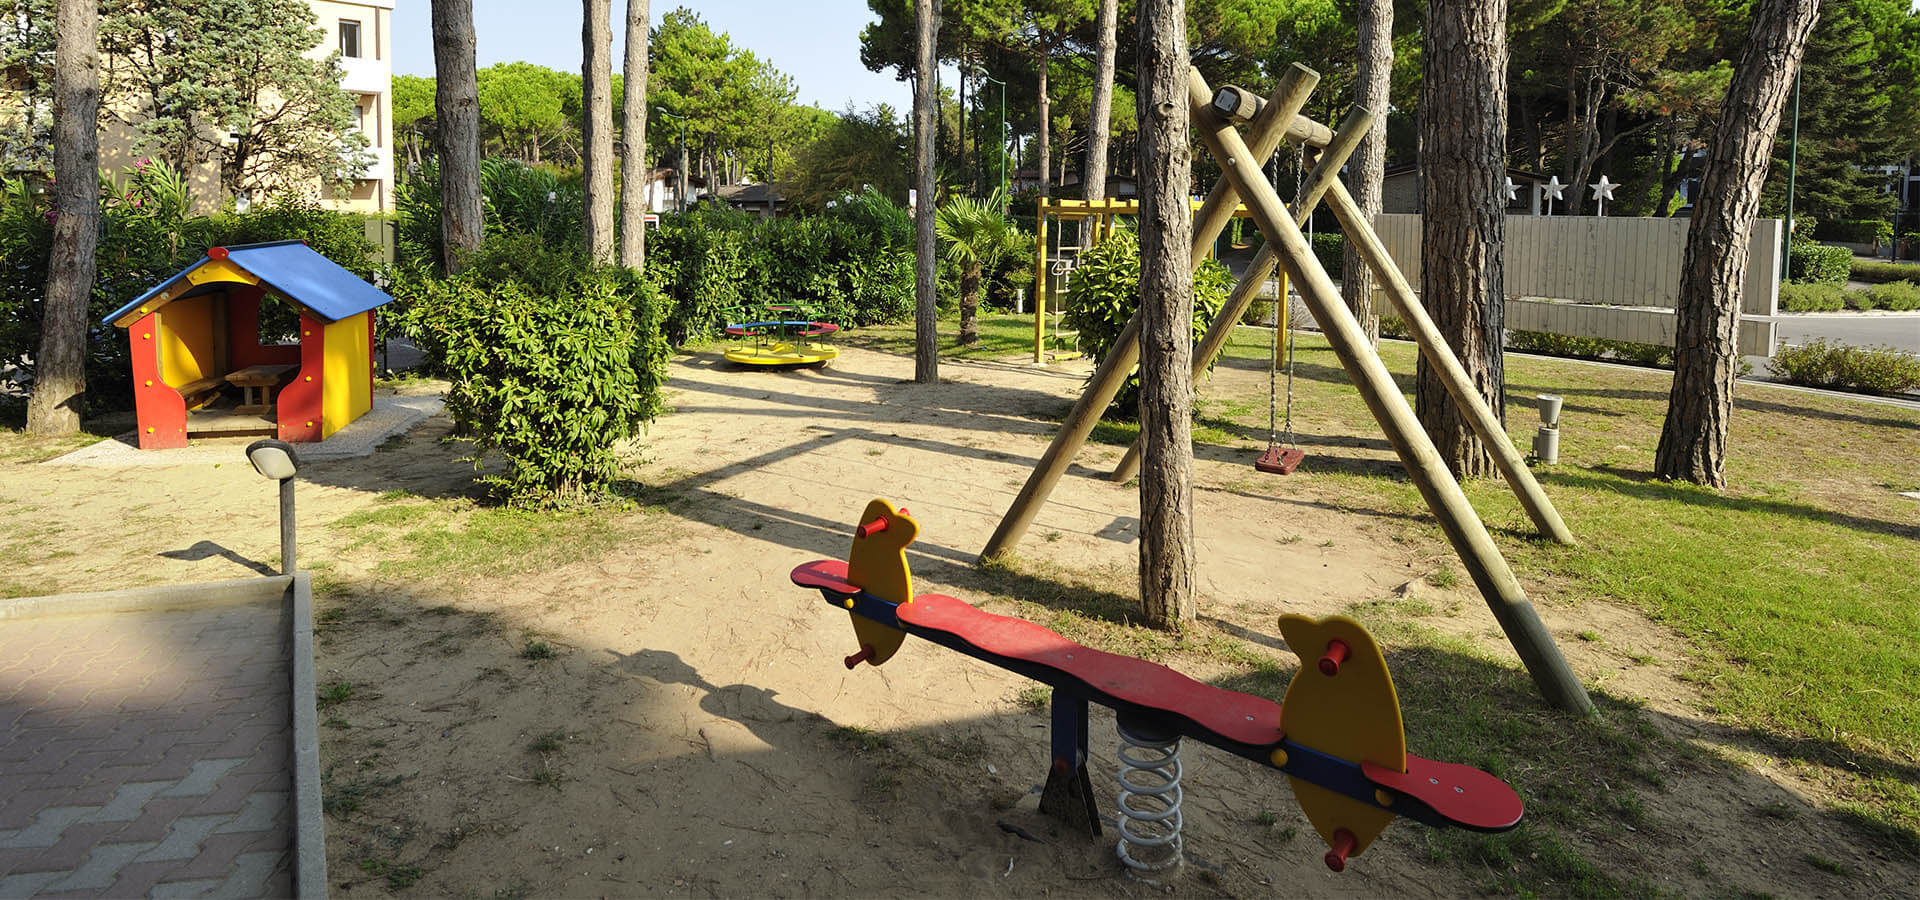 Children Area Lignano